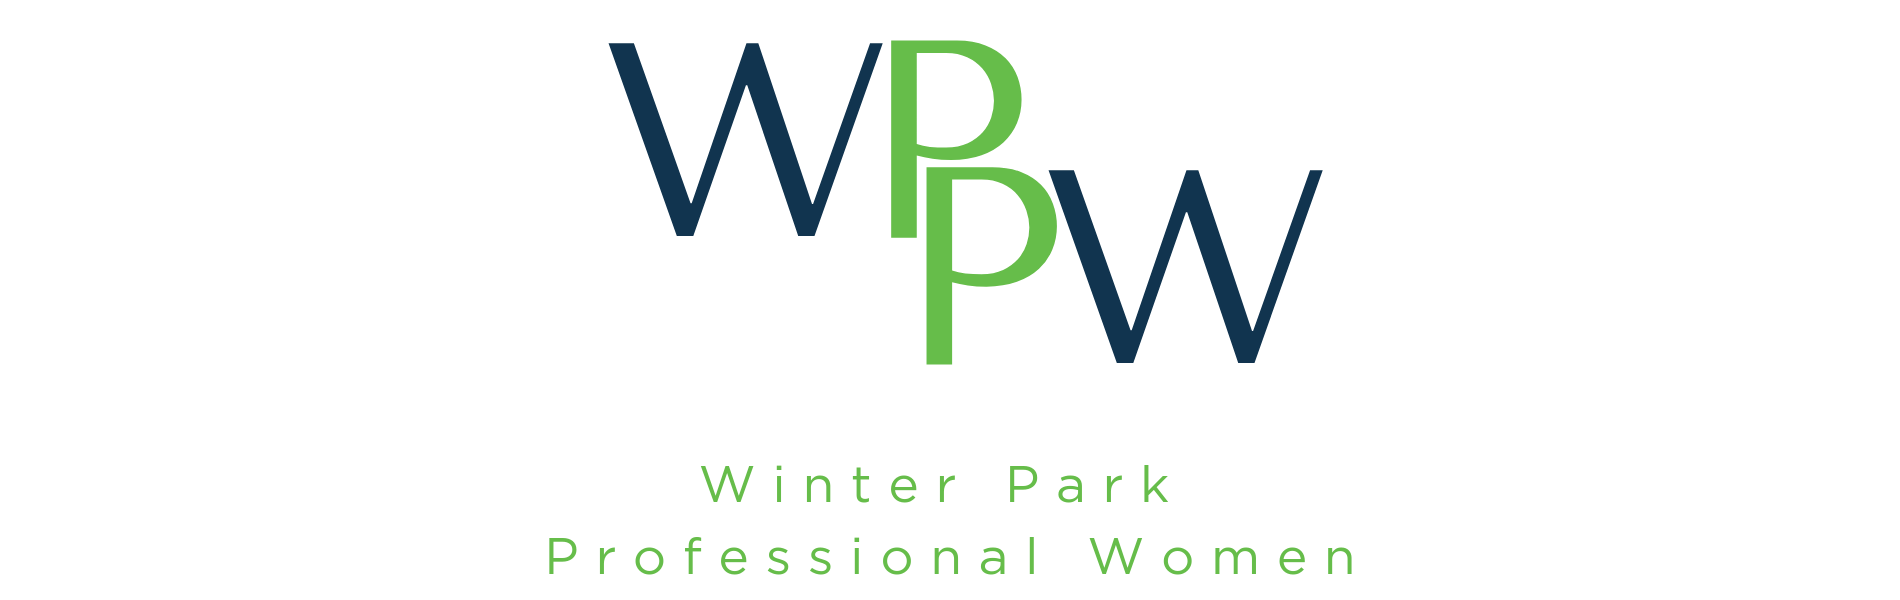 WPPW-logo.png